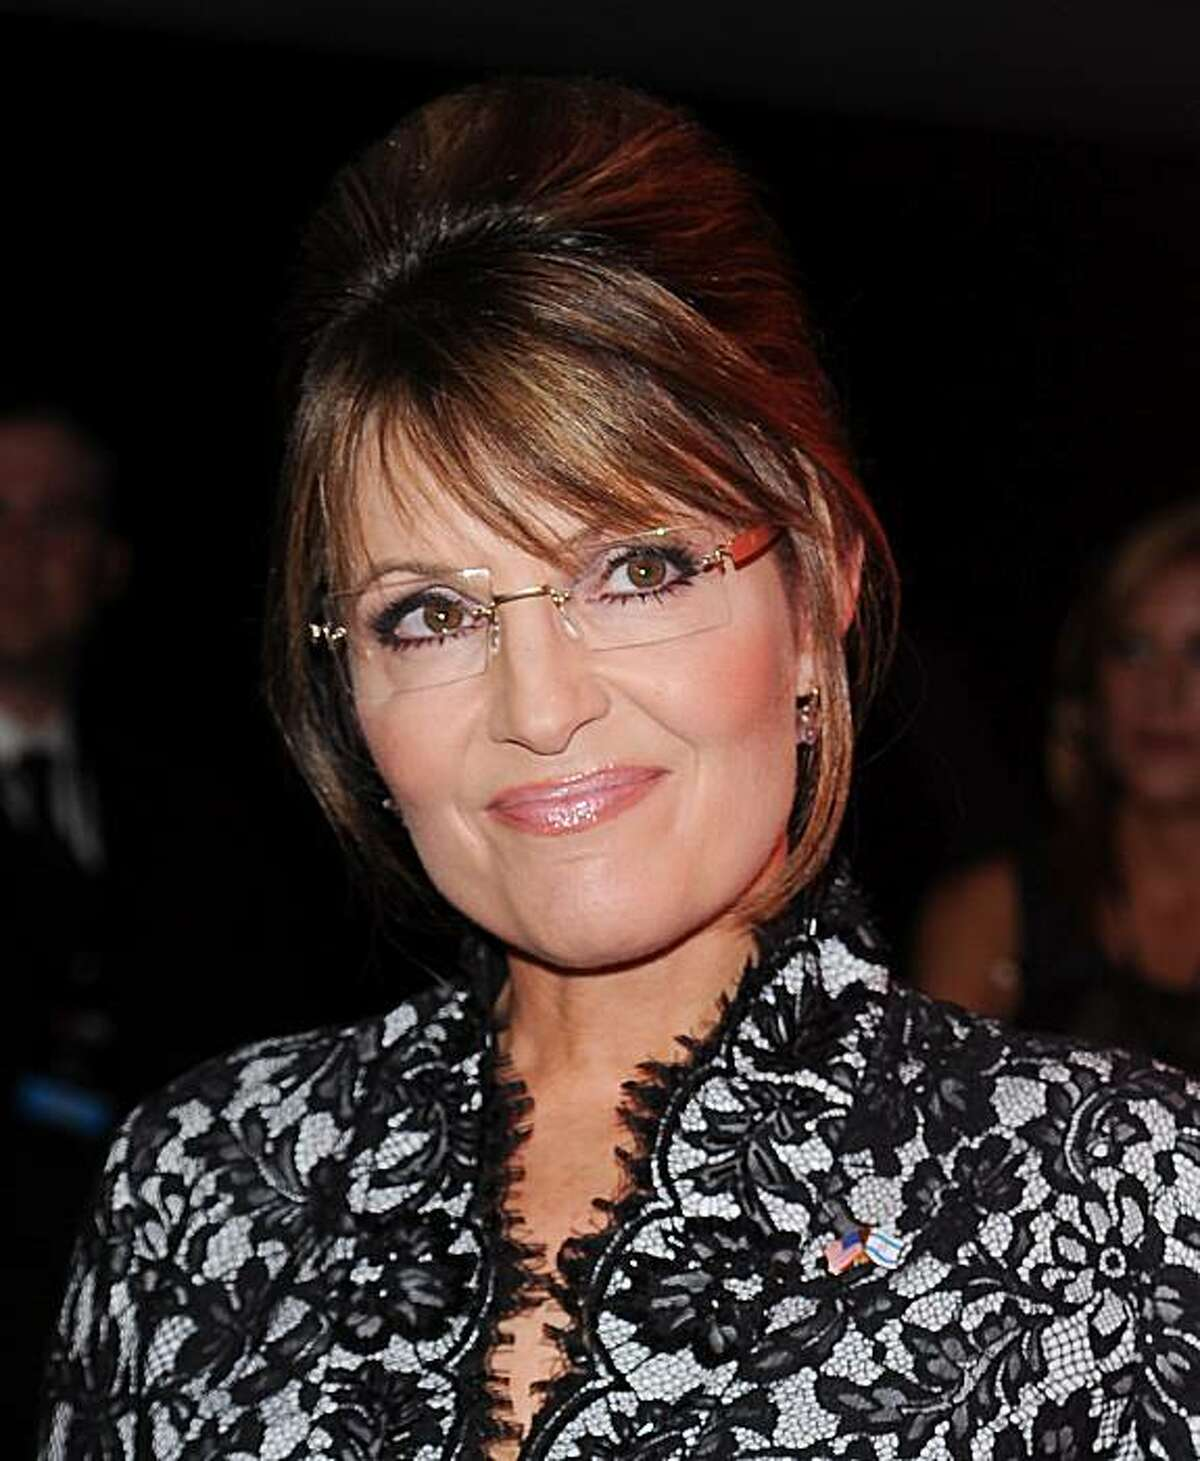 Sarah Palin attends the TIME 100 gala celebrating the 100 most influential people, at the Time Warner Center, Tuesday, May 4, 2010 in New York.